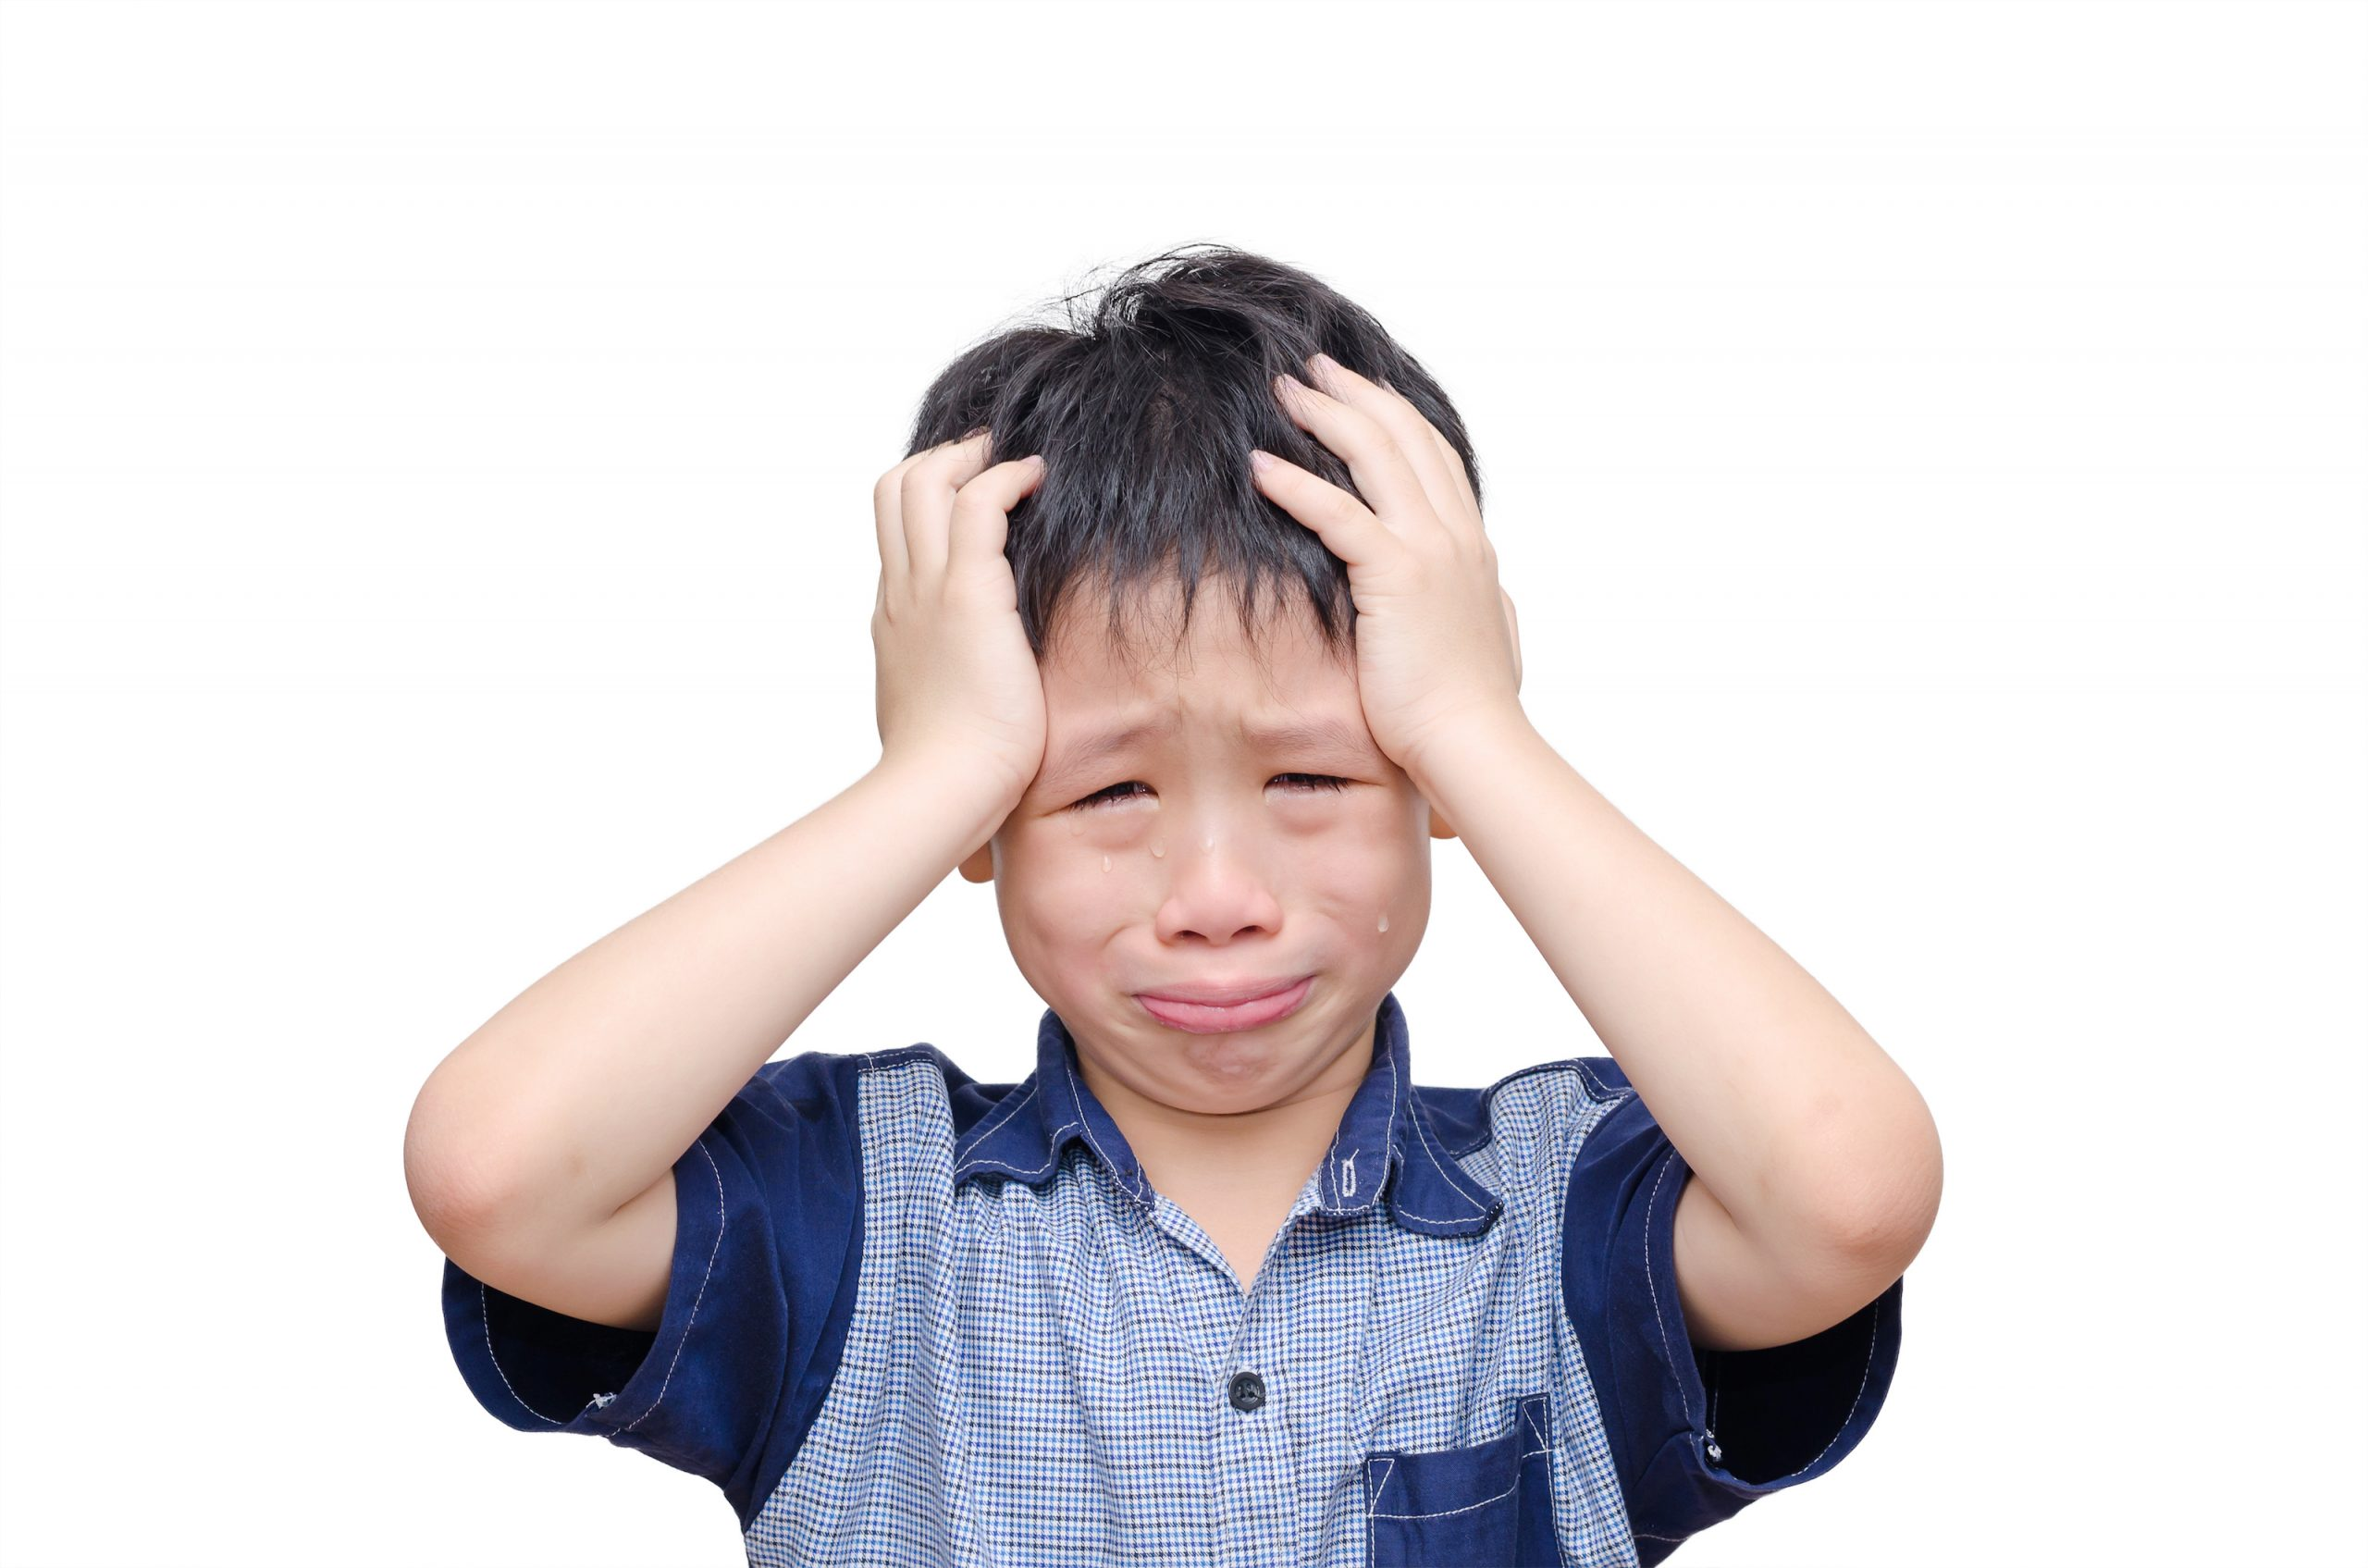 A crying boy puts his hands on his head.